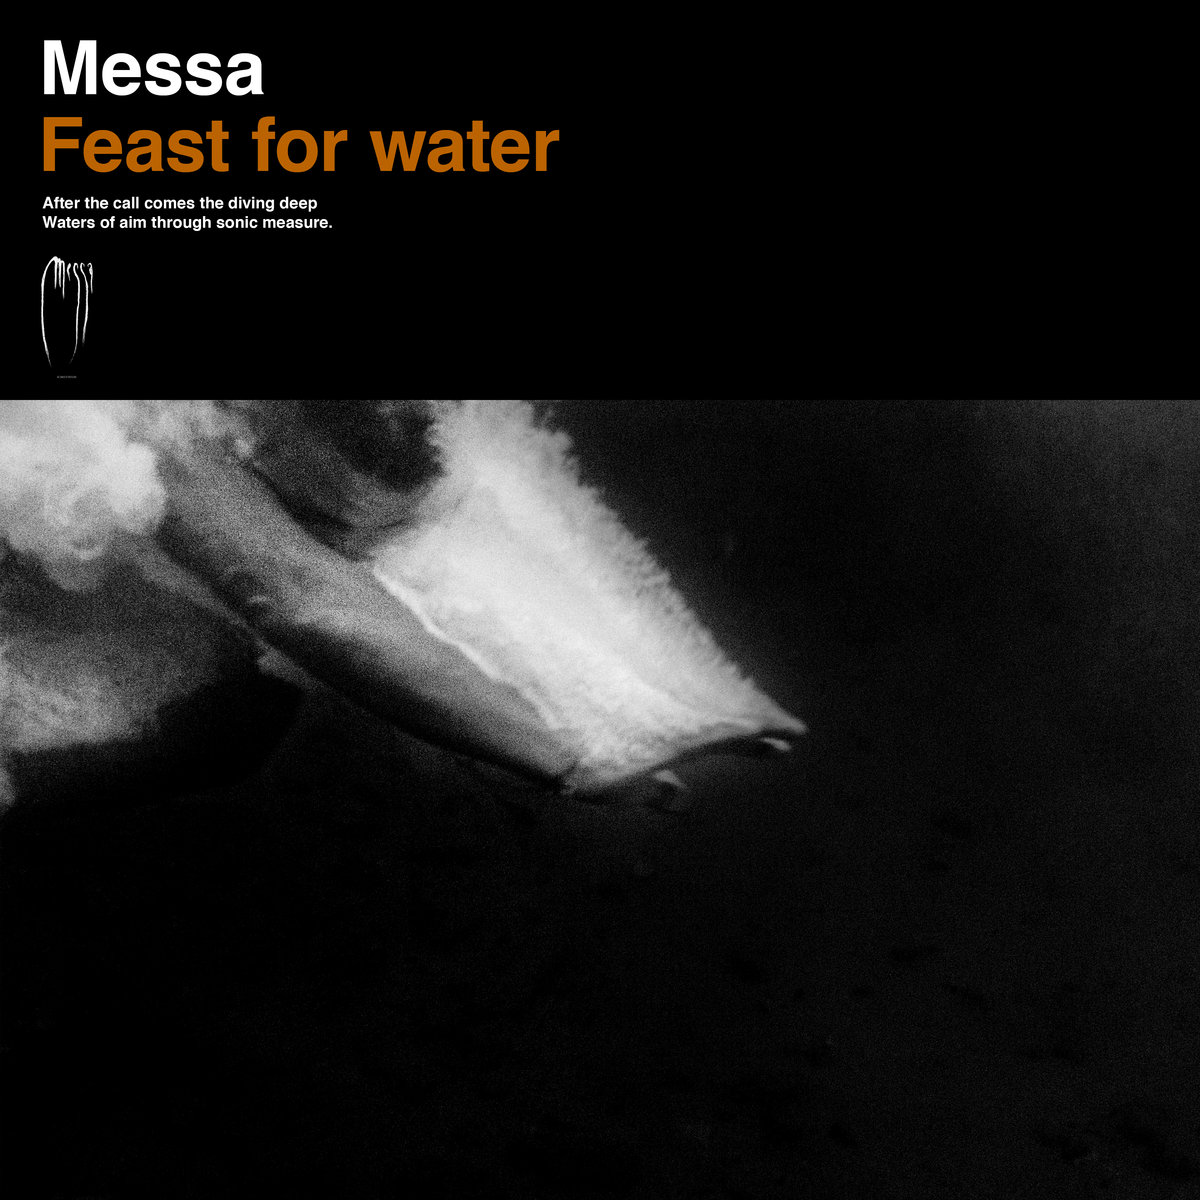 2. Messa - Feast for Water - Feast for Water is the incredible, sophomore effort from Italian doomsters, Messa. Frontwoman Sara's sultry, calming, and enigmatic vocals are the star attraction of this show but the music on offer is the perfect accompaniment. Sparse, warm, and humble, the guitars and keyboards transition across genres from soft bluesy interludes to heavy, doomy passages and from acoustic, jazz-like breaks to staccato-filled crescendoes. Feast for Water is a completely unique metal experience.